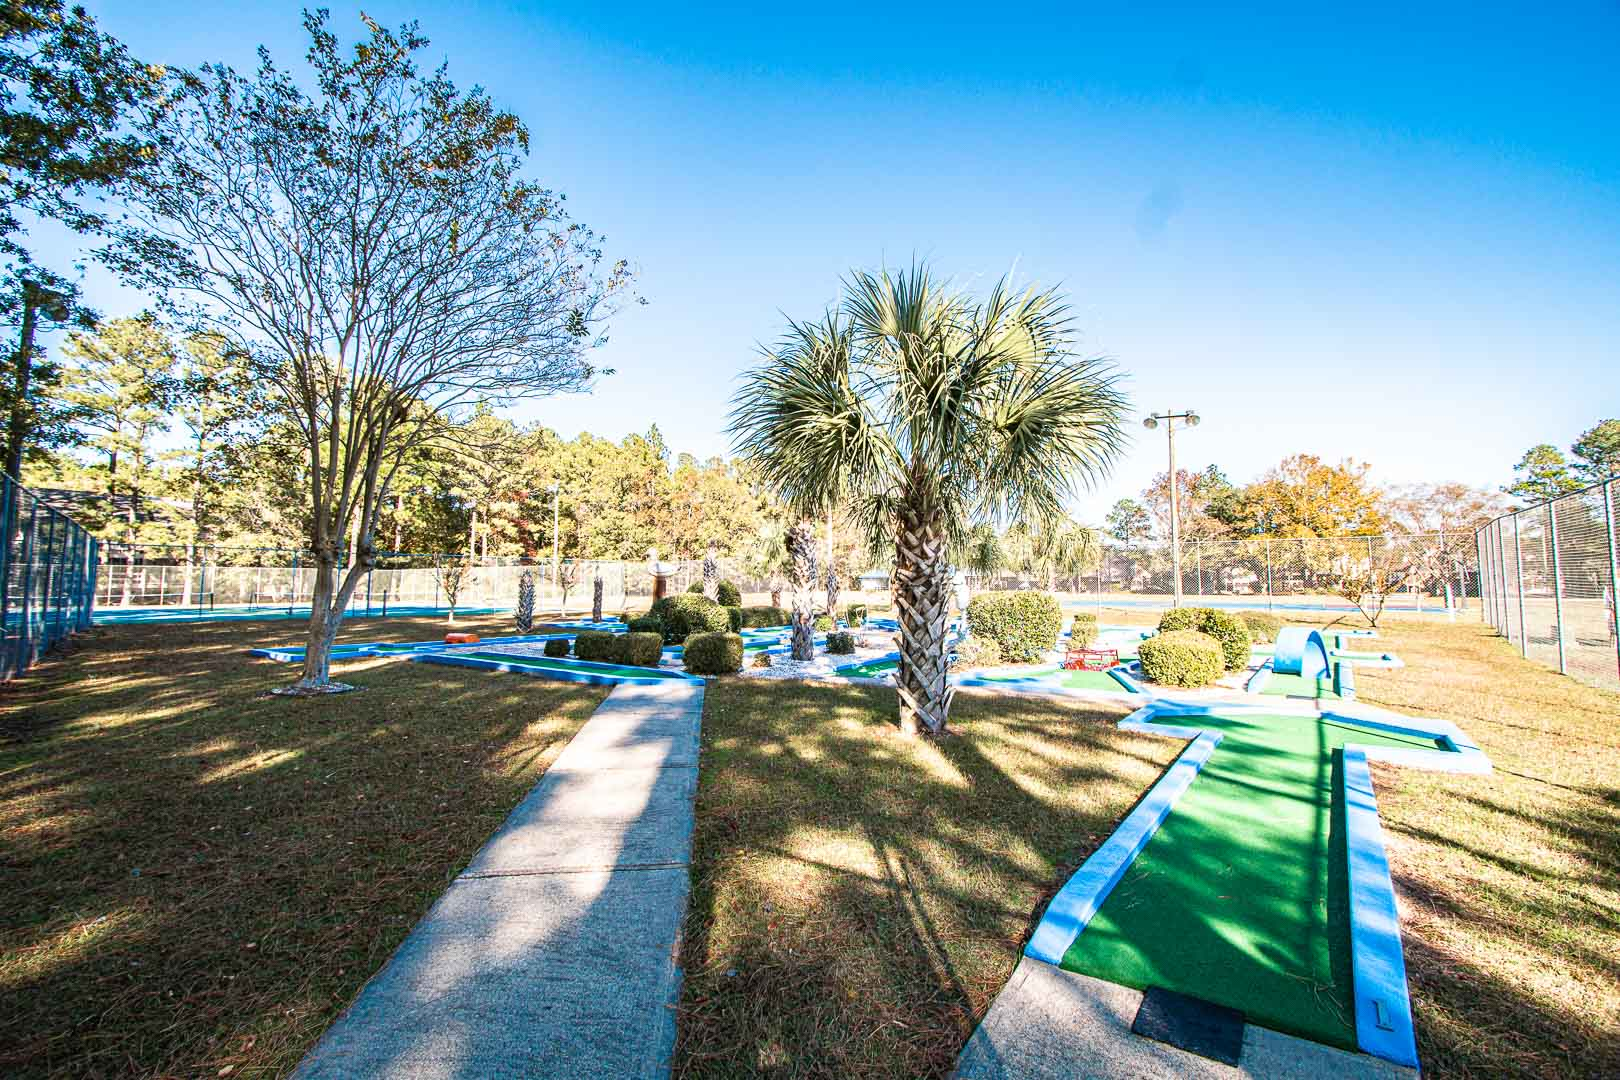 A spacious outdoor mini golf course at VRI's Waterwood Townhomes in New Bern, North Carolina.